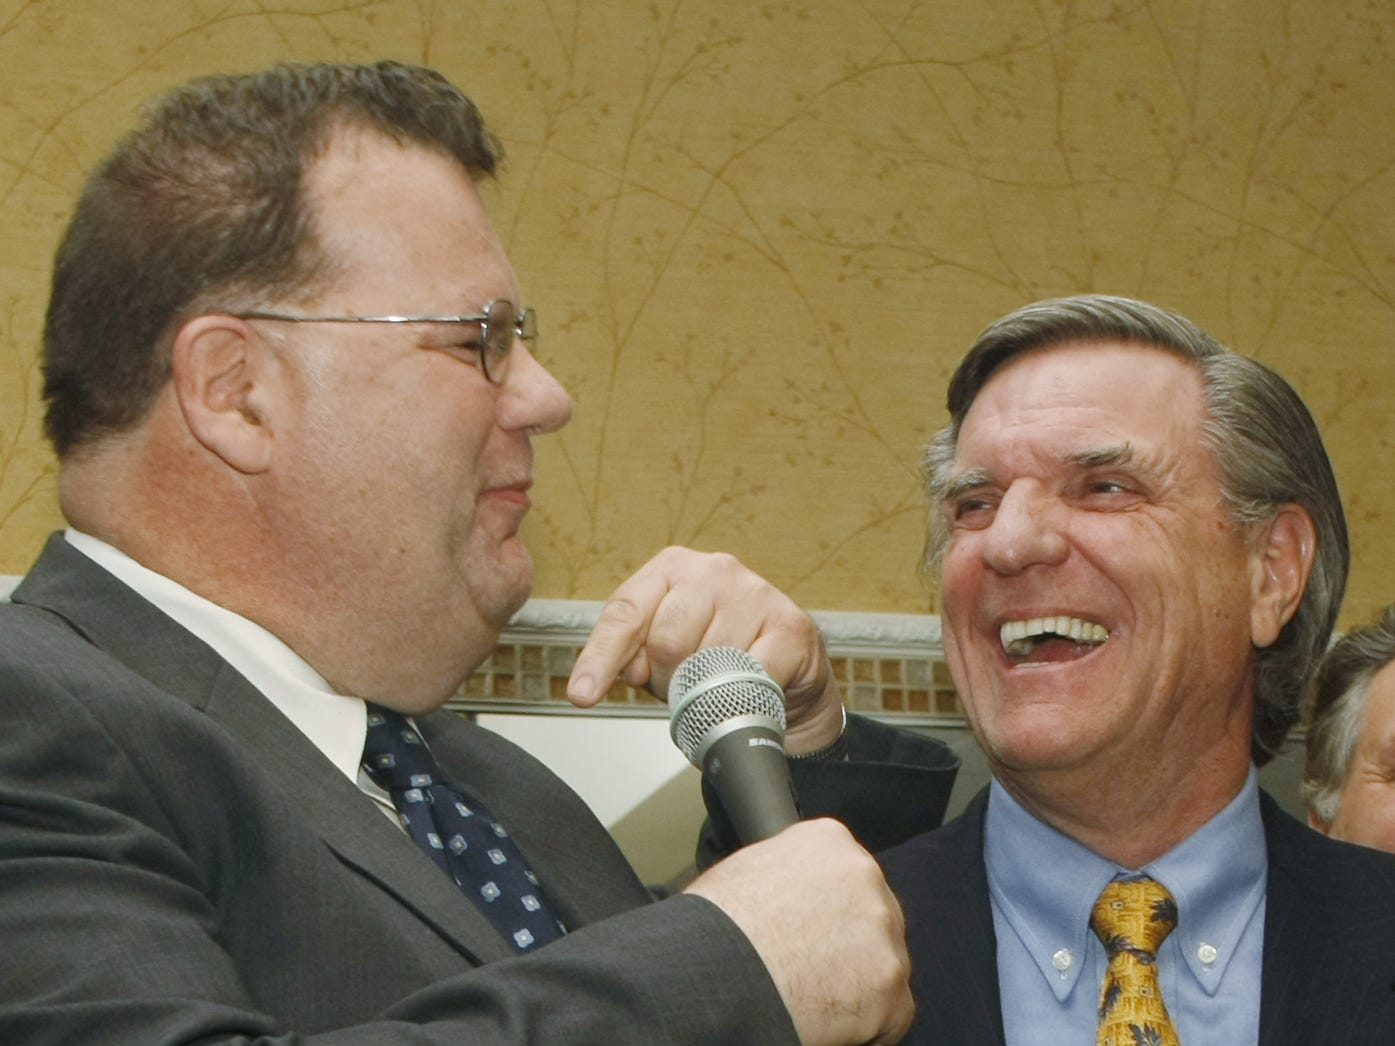 04/06/11- TOMS RIVER - Ocean County Freeholder John P. Kelly, left, makes a joke as he is introduced by Ocean County GOP chairman, George Gilmore, right. Ocean County Republican Party convenes at the Toms River Holiday Inn for its annual mini-convention to select candidates to run in the June 7 primary. They will be running for the vacant Assembly seat in the 10th Legislative District. Wednesday, April 6, 2011. Photo by Mary Frank/Staff Photographer - #88022.